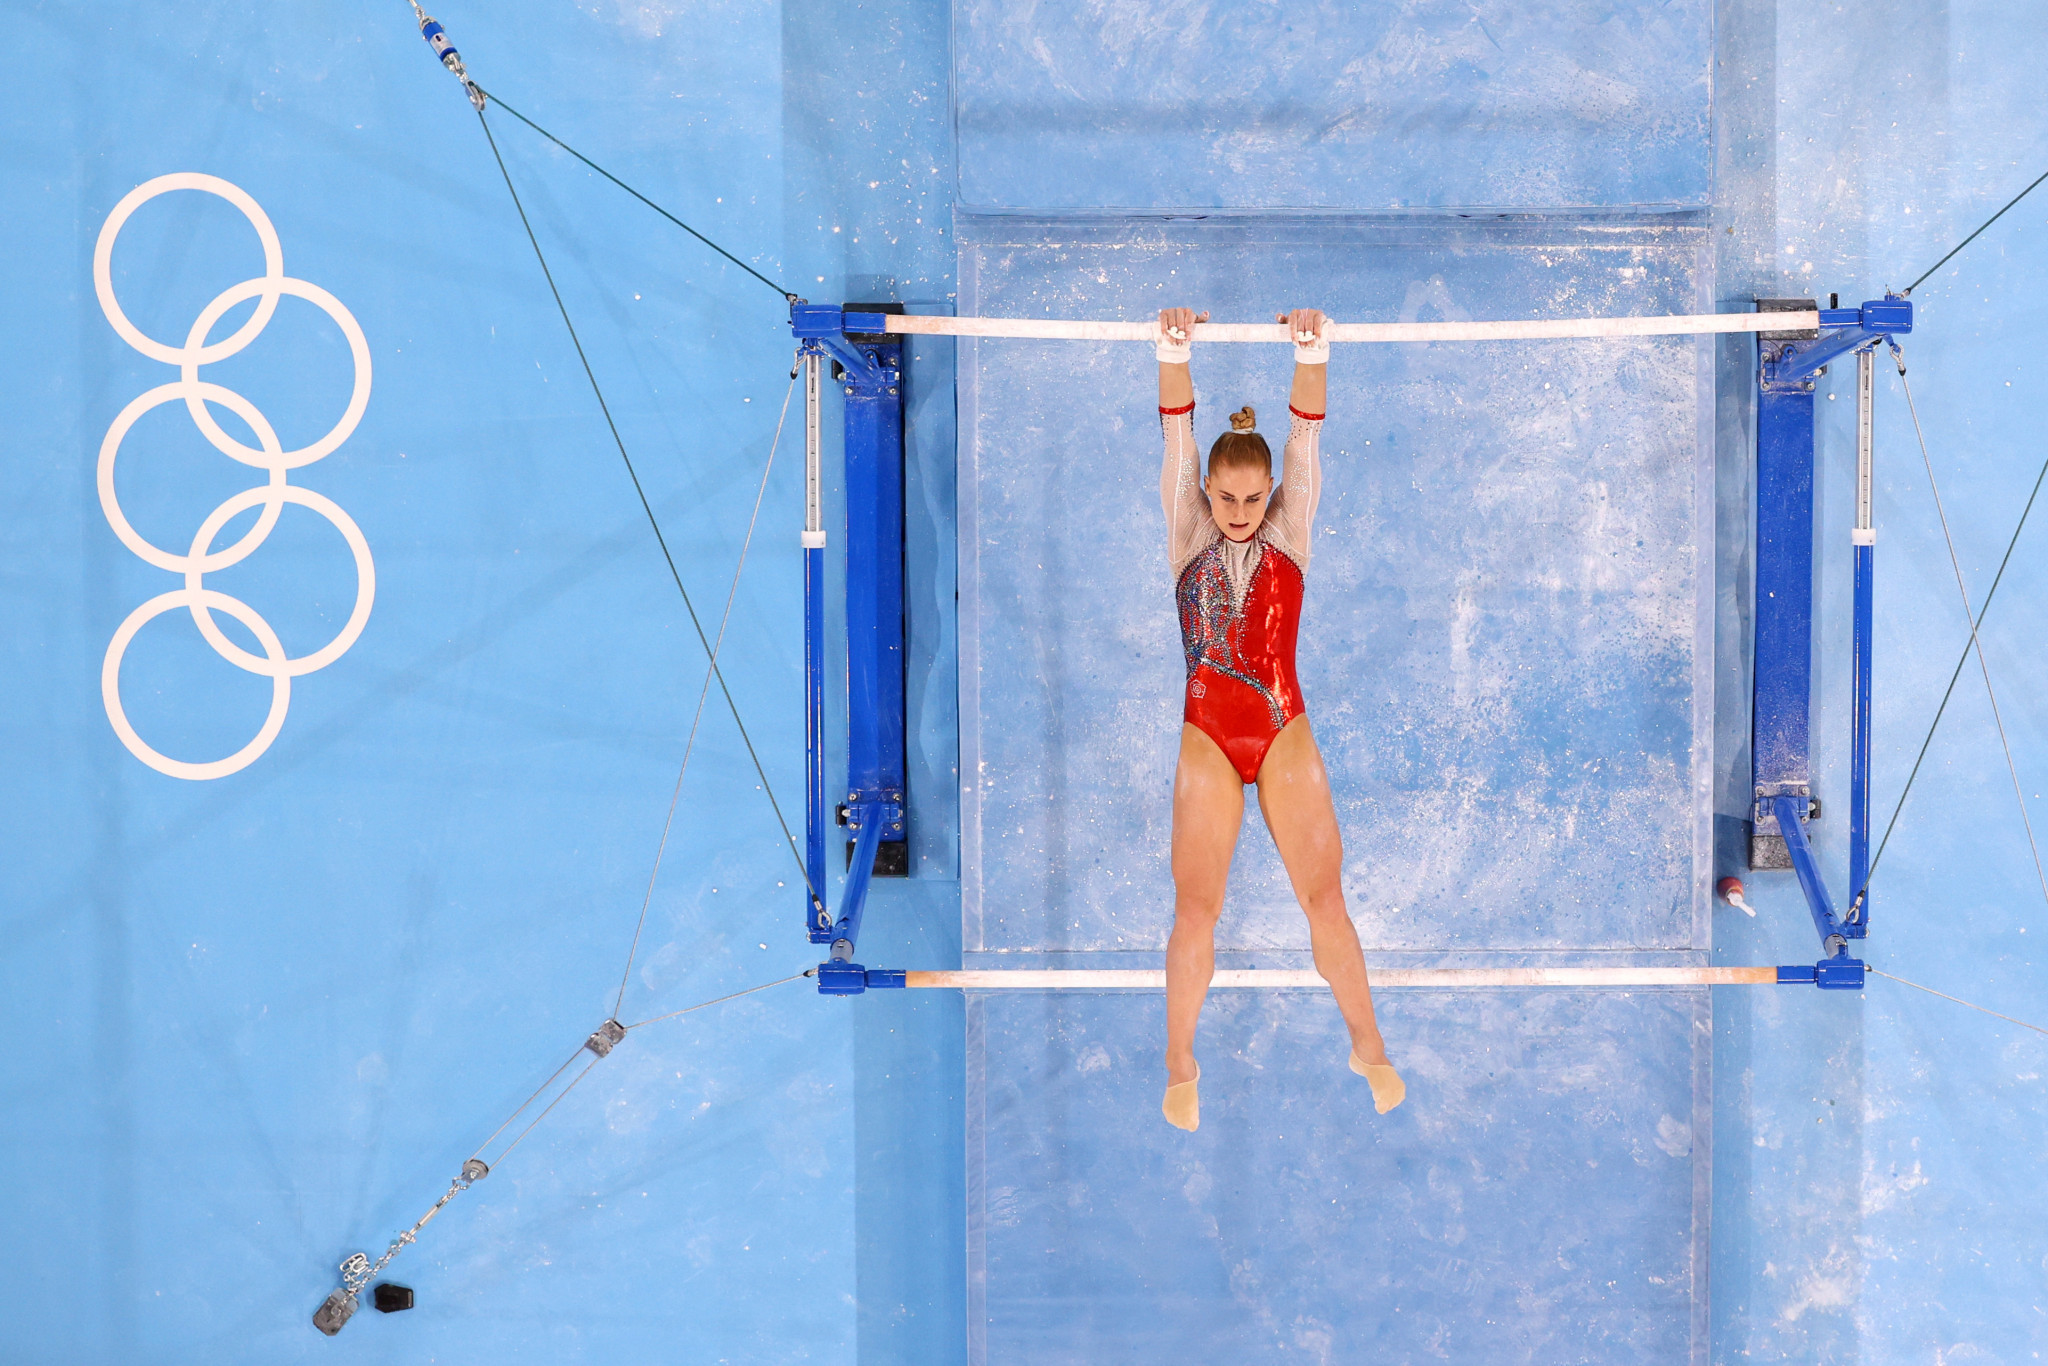 Liliia Akhaimova has previously won gold medals at European Championships and World Championships for Russia  ©Getty Images